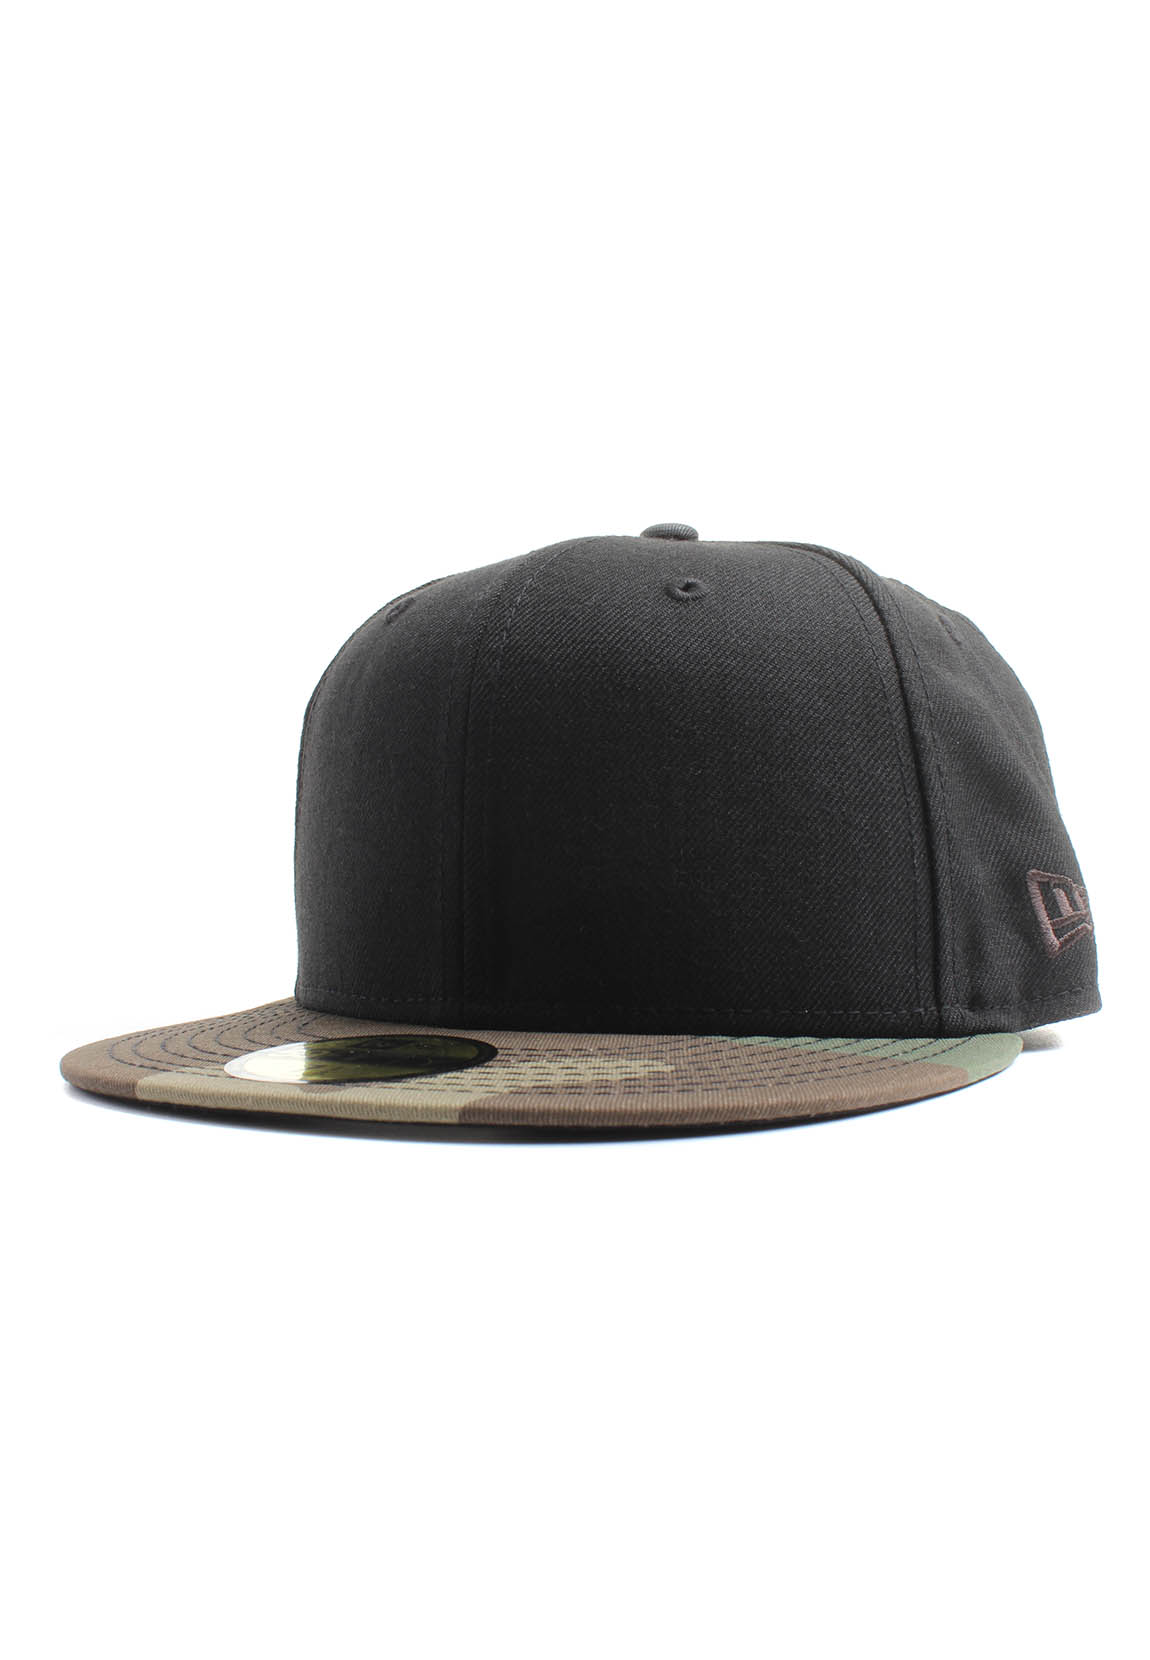 dc549aa8ab06 New Era Newera Black W 59Fifty Cap NE BASIC Schwarz Camouflage ...